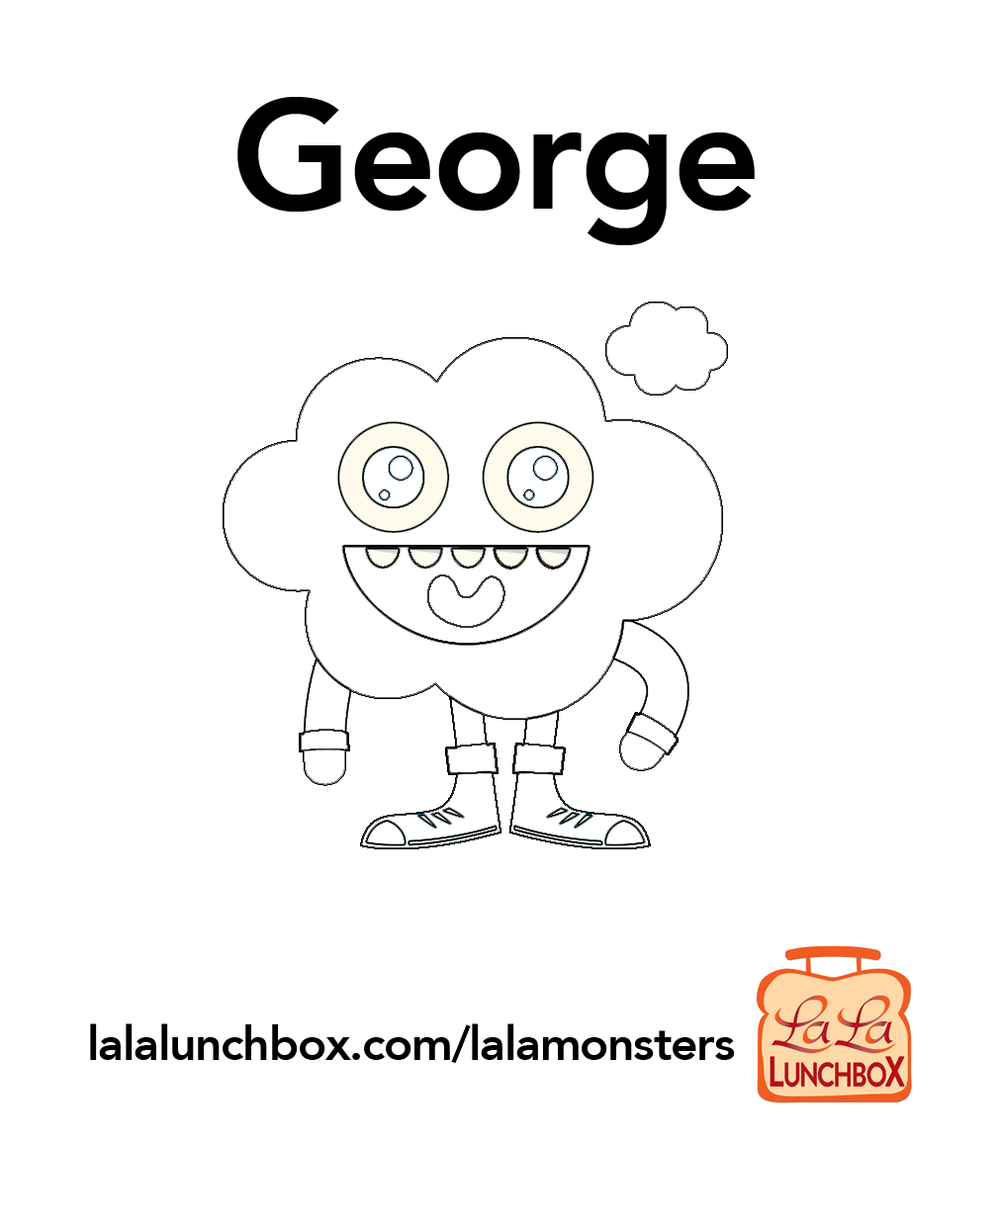 LaLa coloring book George.png